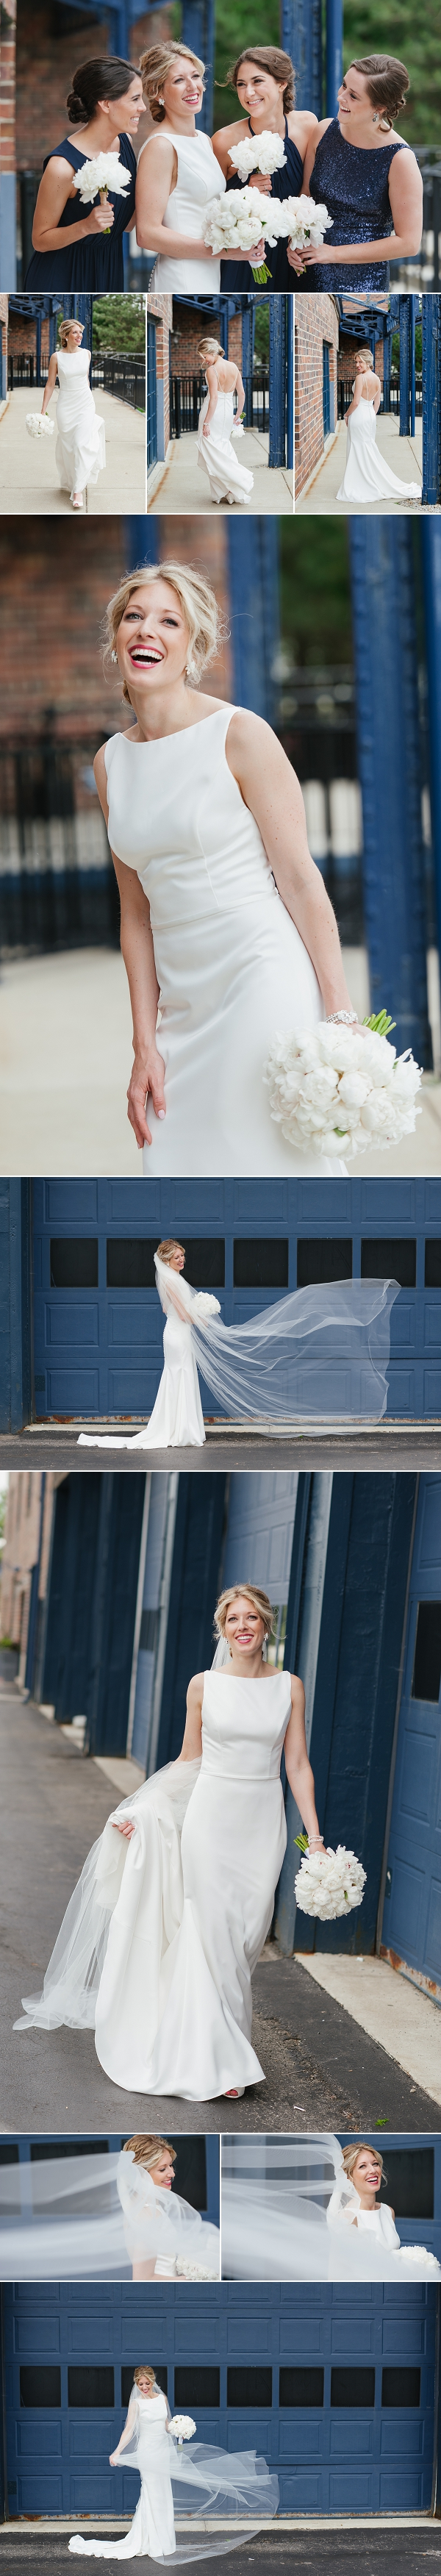 Bride at Dock 580